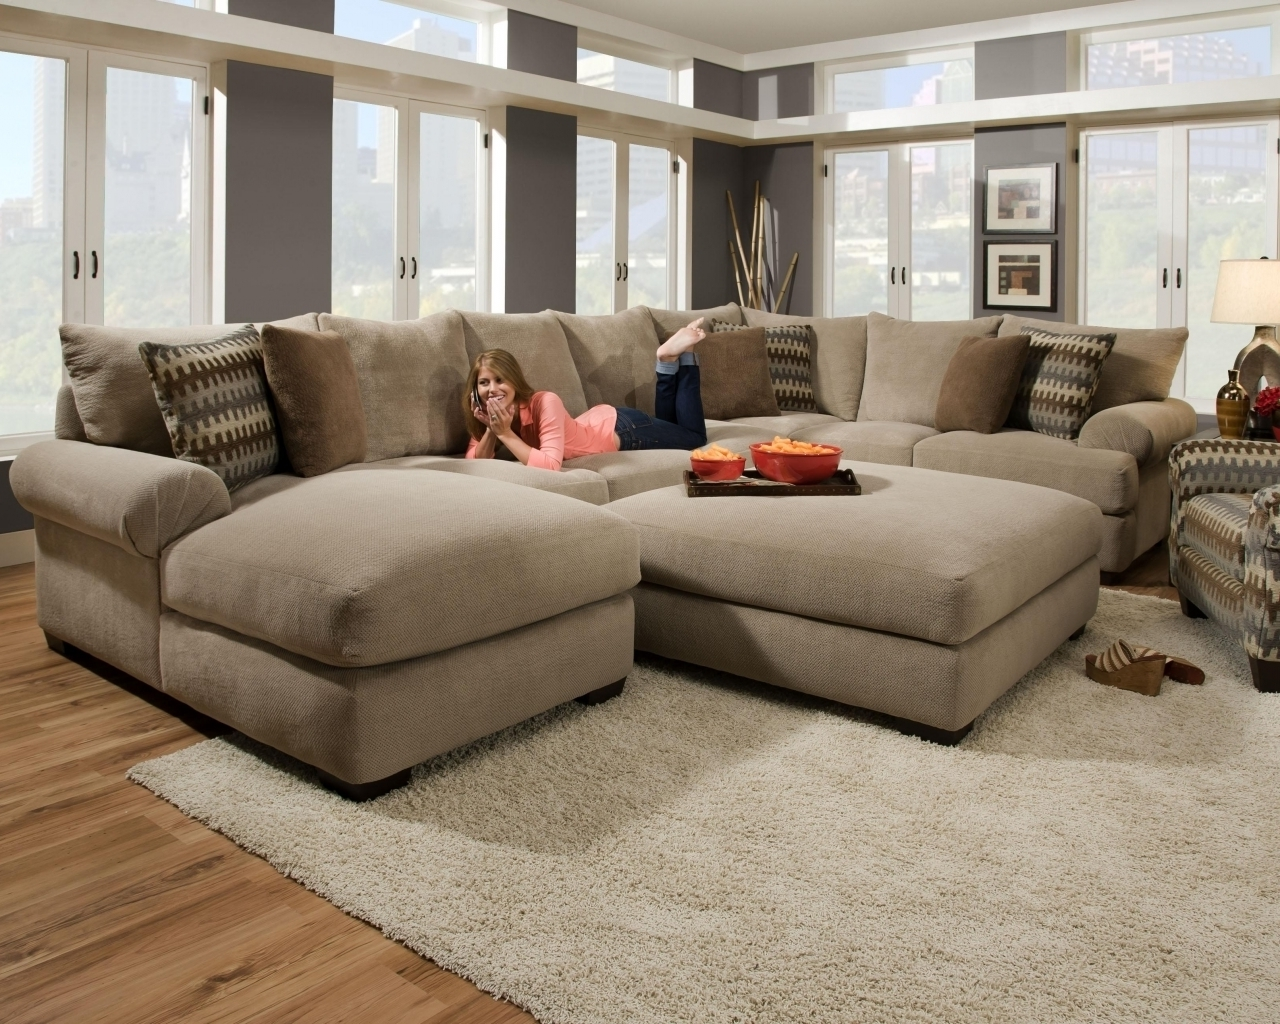 Sectional Sofas With Chaise Lounge And Ottoman With 2019 Amazing Sectional Sofa With Oversized Ottoman 59 For Your Best (View 3 of 20)